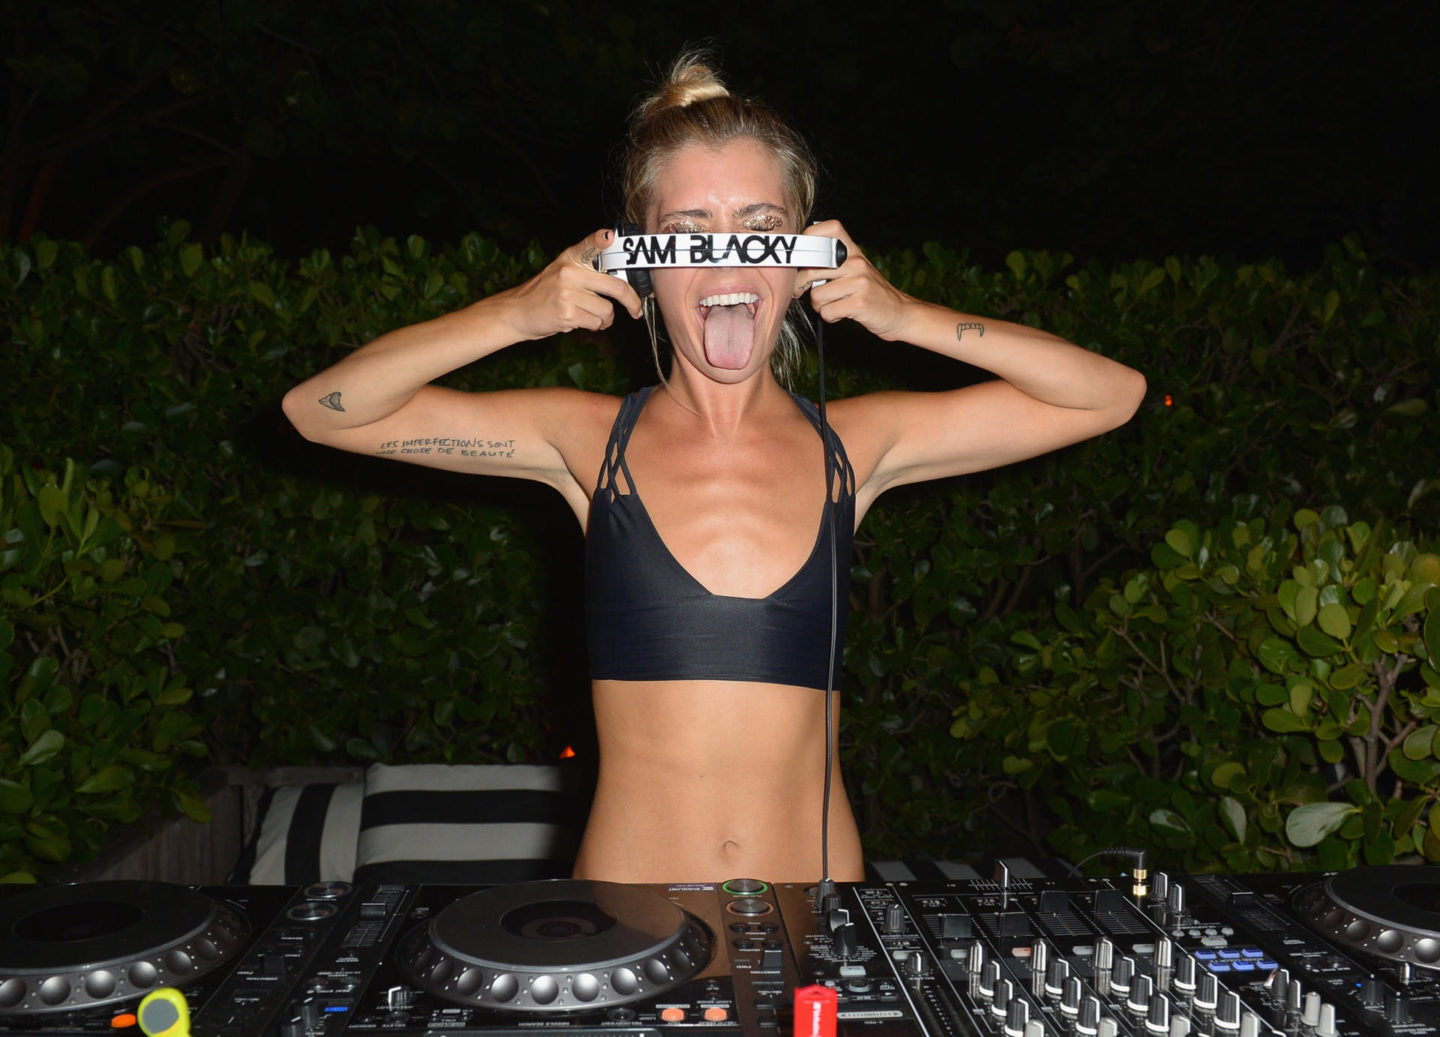 MIAMI BEACH, FL - JULY 15: DJ Sam Blacky spins at KAOHS 2017 Collection at SwimMiami - Backstage at W South Beach on July 15, 2016 in Miami Beach, Florida. (Photo by Gustavo Caballero/Getty Images for KAOHS)